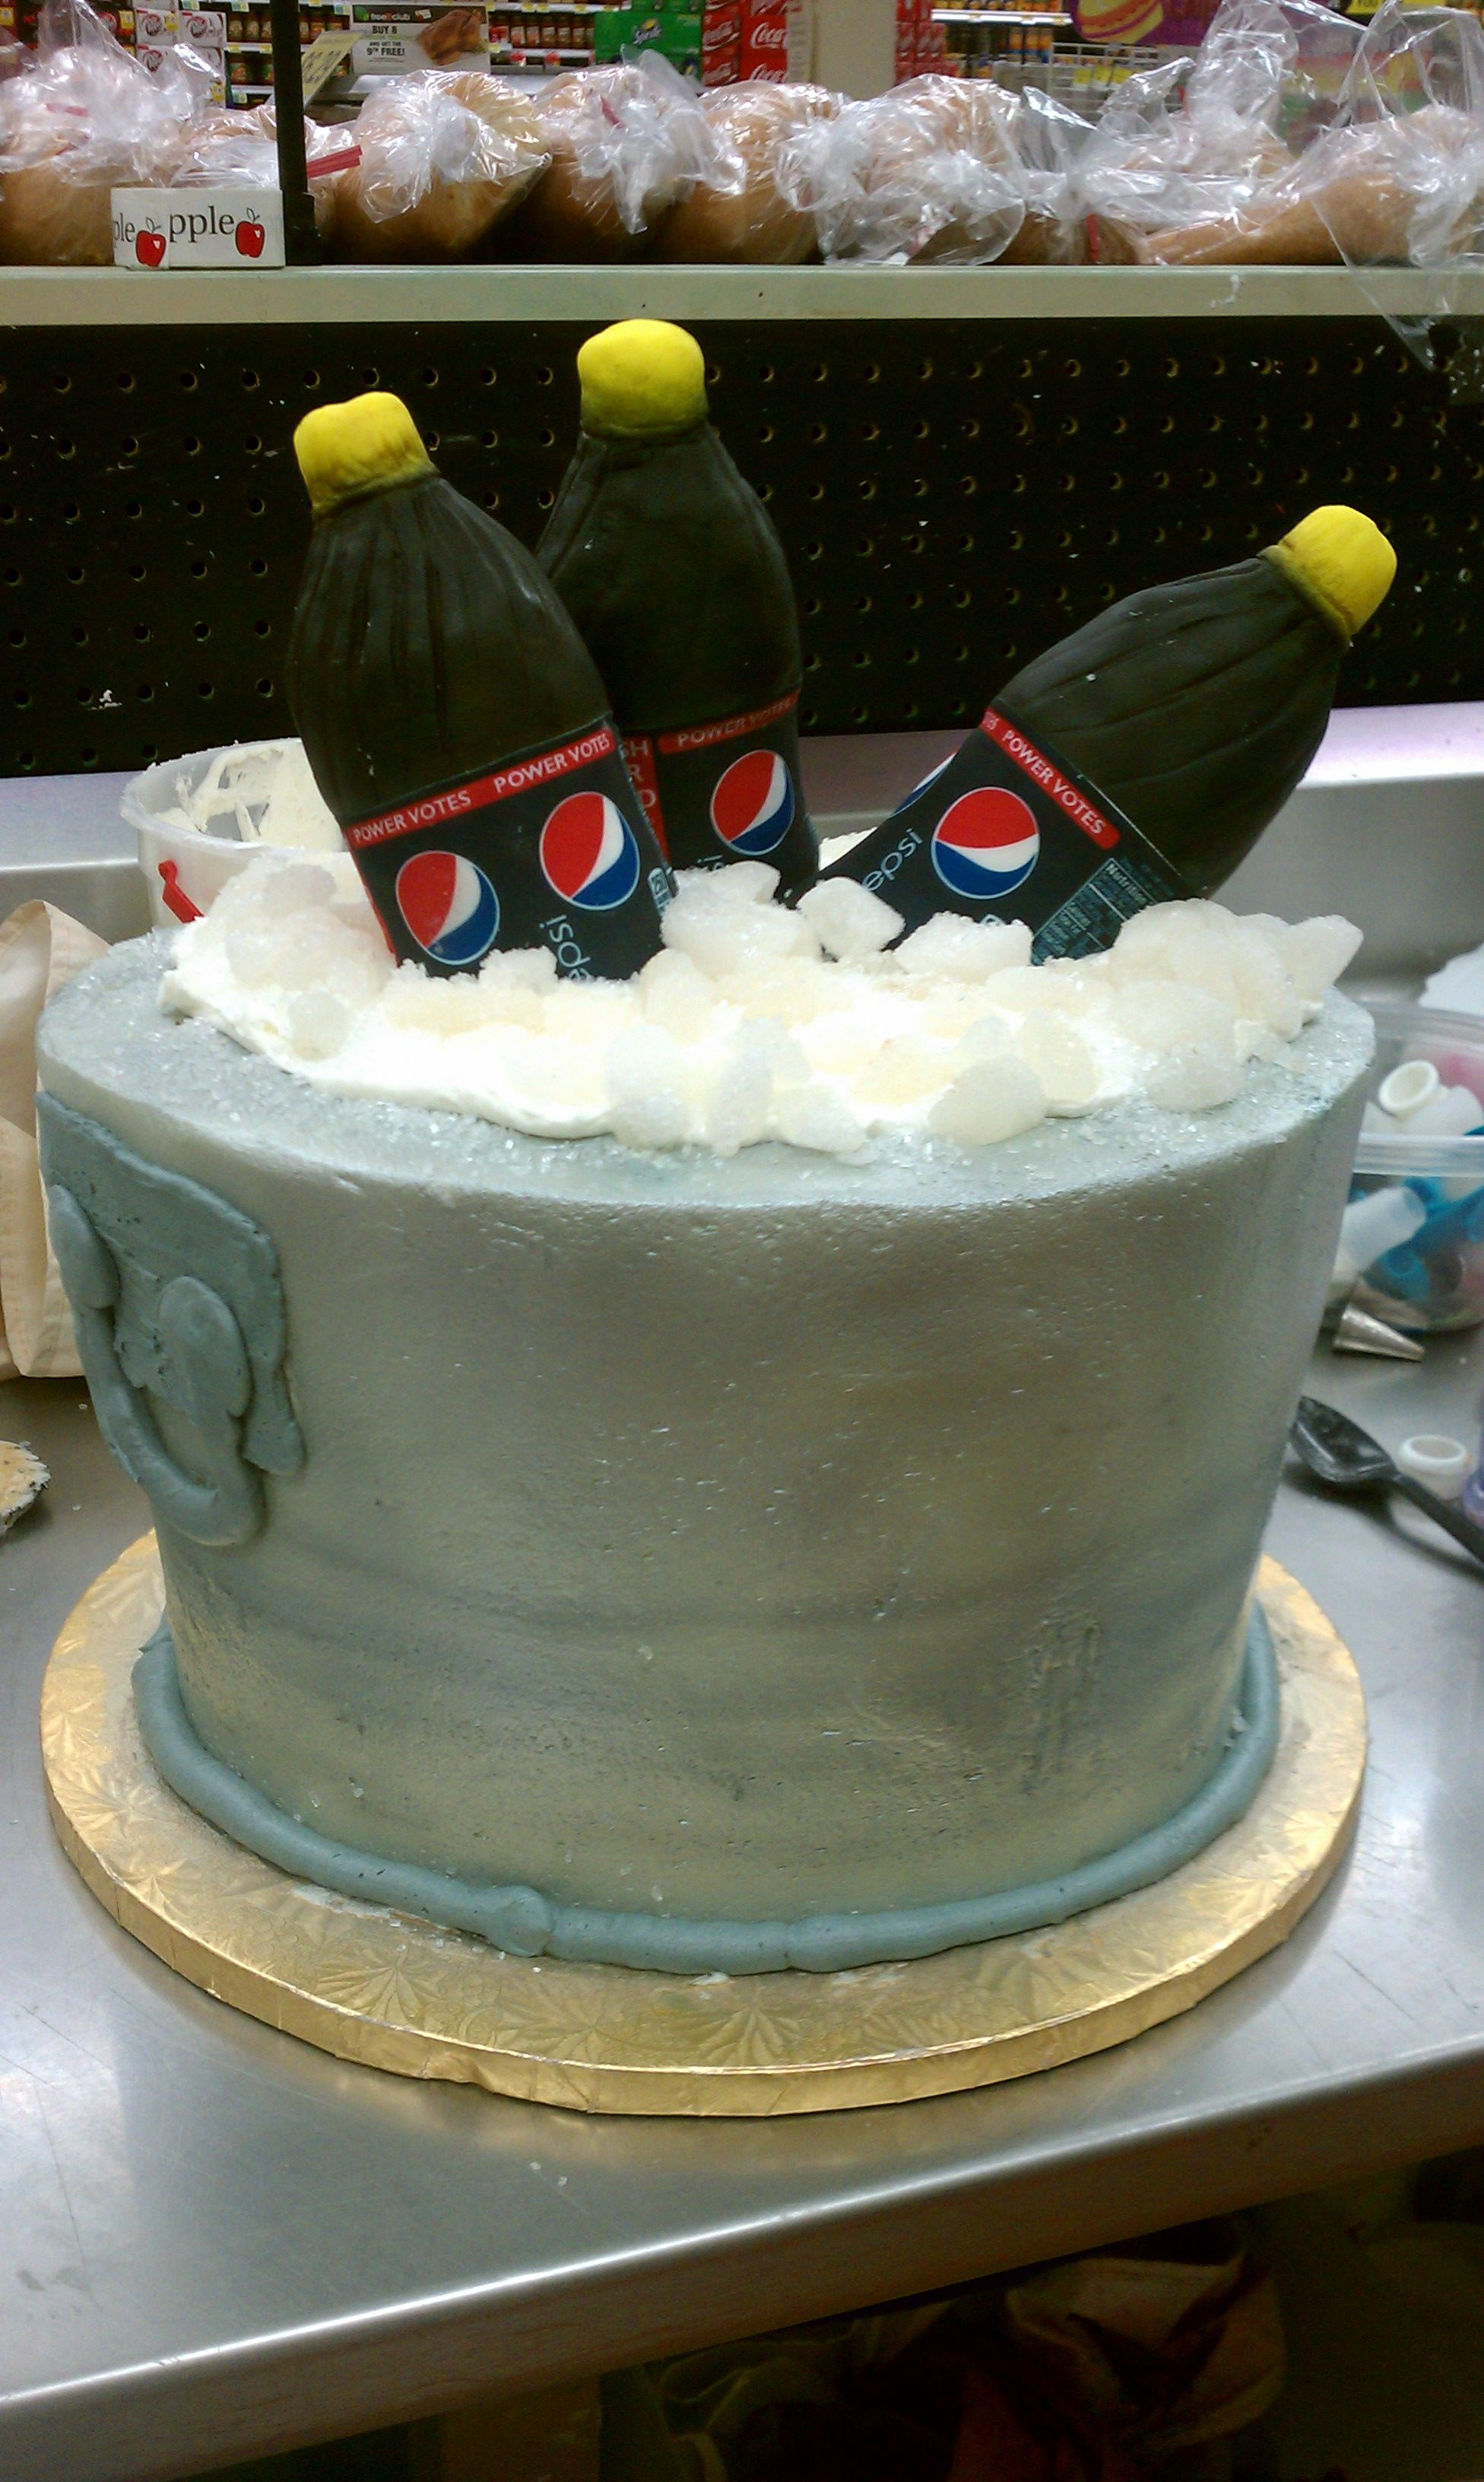 17 best images about pepsi pepsi cake sodas and 17 best images about pepsi pepsi cake sodas and bundt cakes